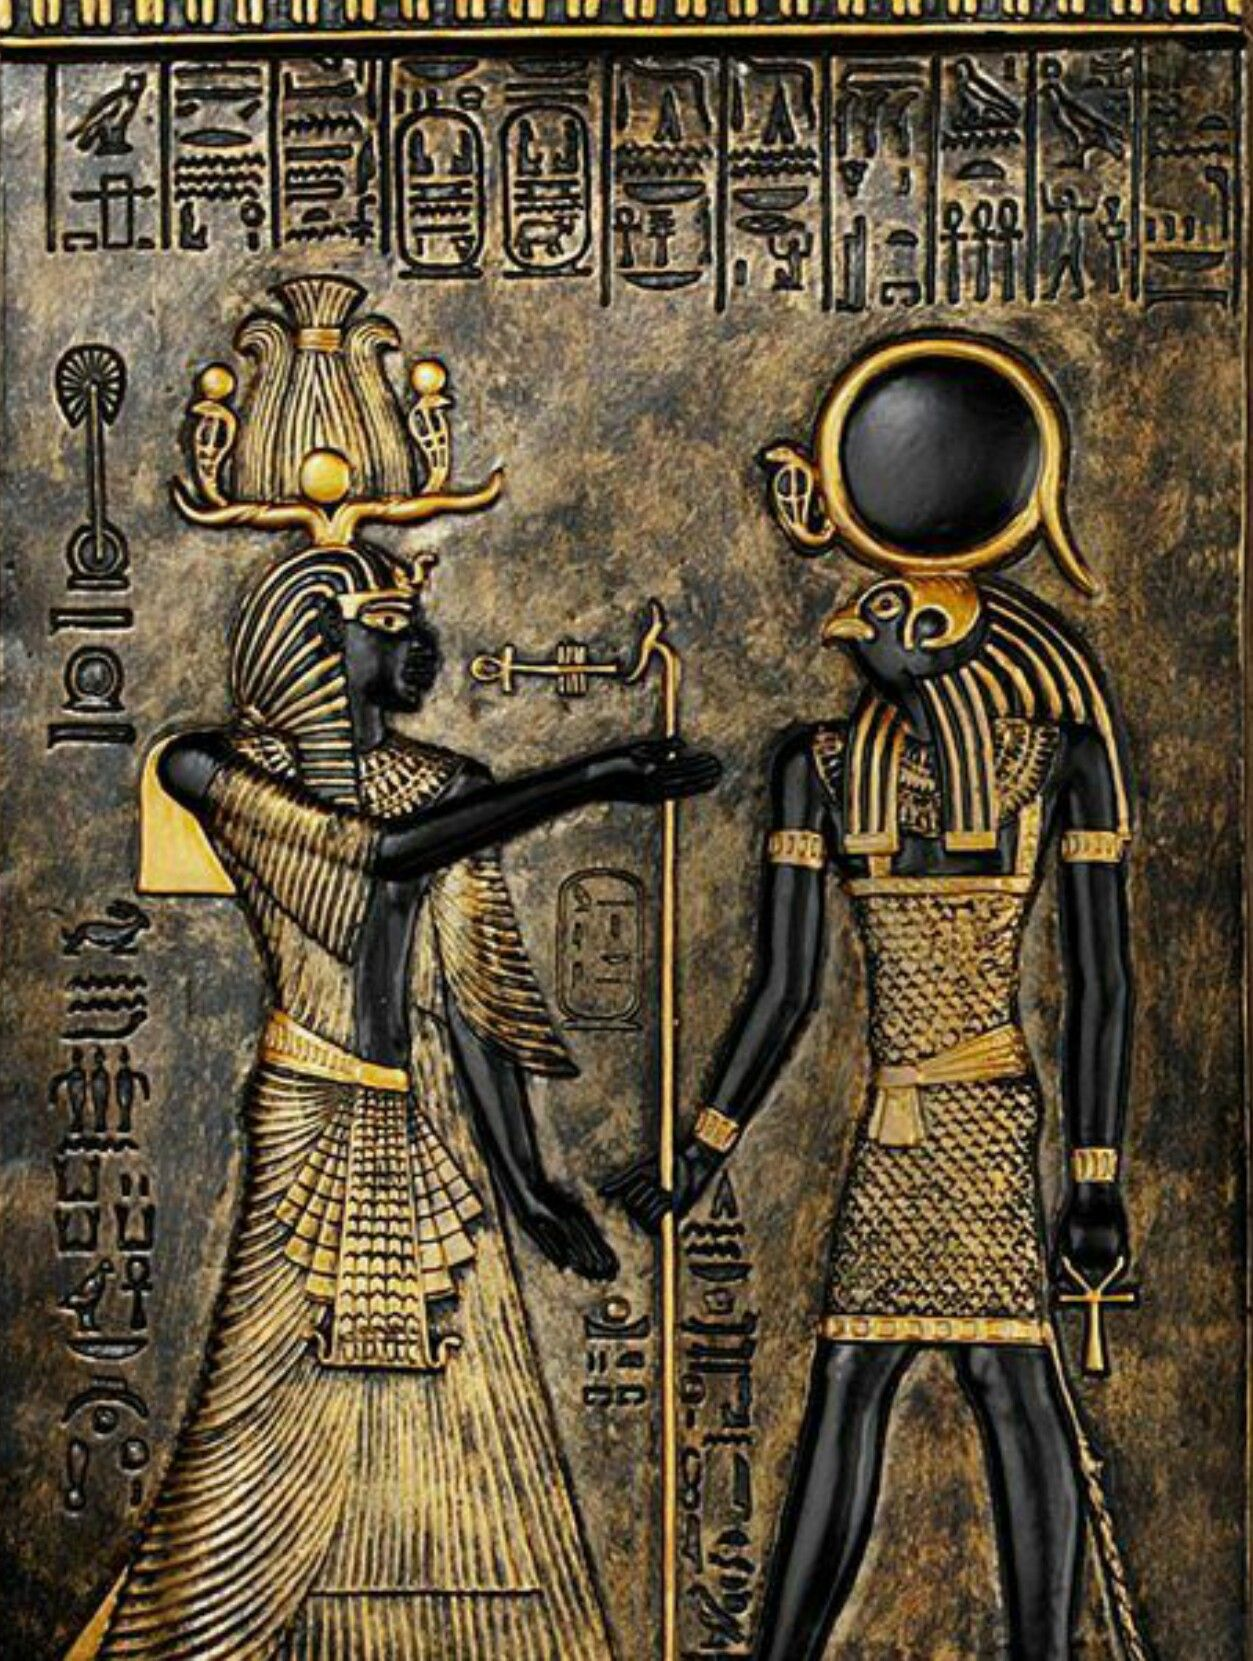 Best Essays In English Pictures Of Ancient Egyptian Civilization Essay Ancient Egyptian  Civilization And Culture History Essay Ancient Egyptians Had A Supreme And Examples Of Thesis Statements For Expository Essays also High School Entrance Essay Examples Pin By Adriana Ibarra On Egipcio  Pinterest  Ancient Egypt  Science Fiction Essay